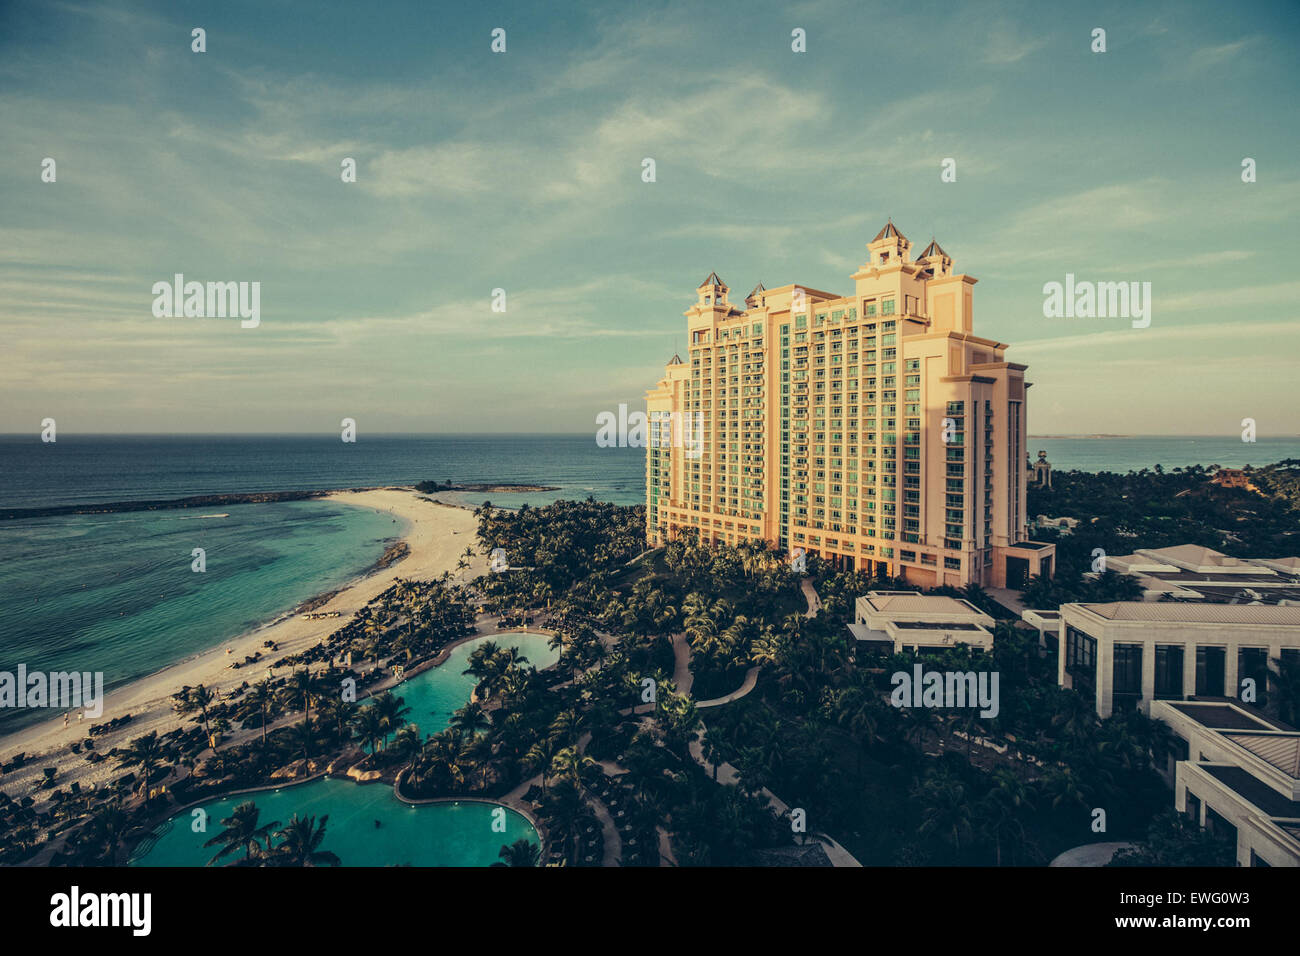 Atlantis Resort on Paradise Island - Stock Image